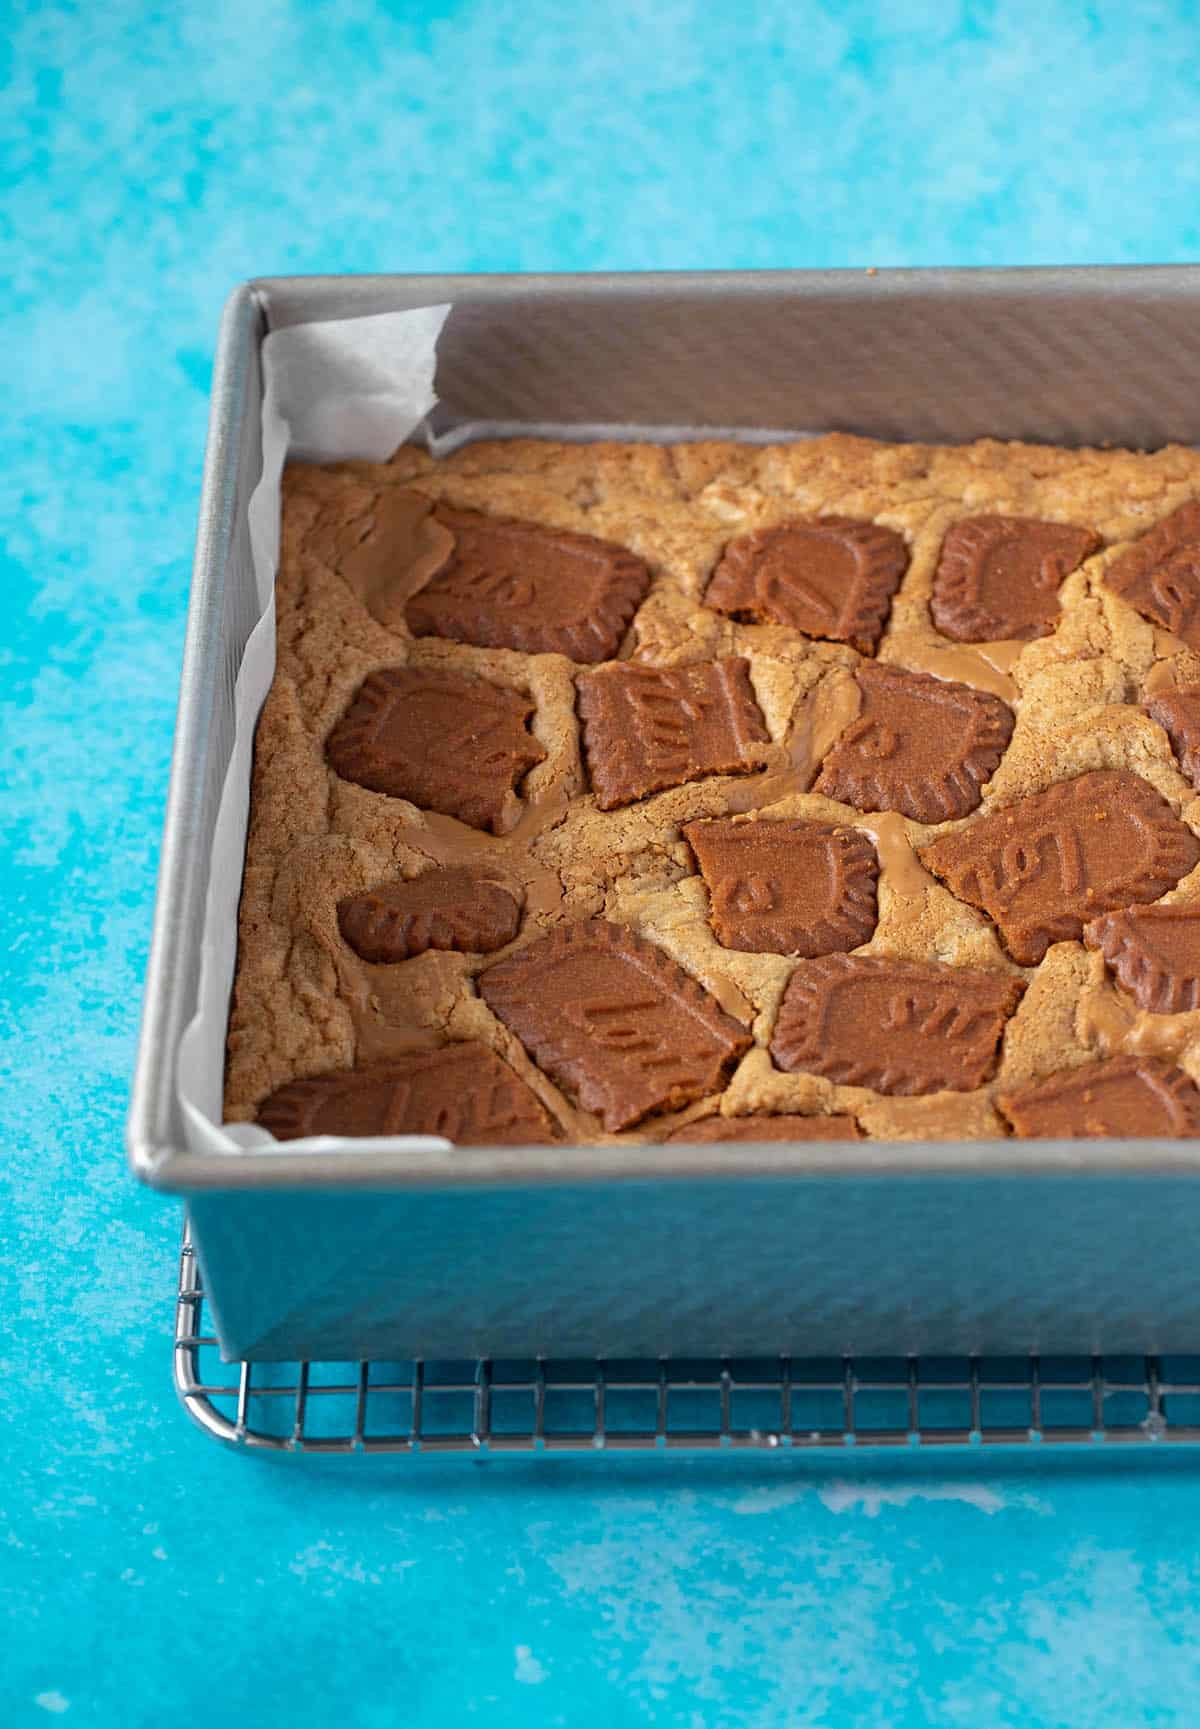 A blondies cooling in a baking pan after being taken out of the oven